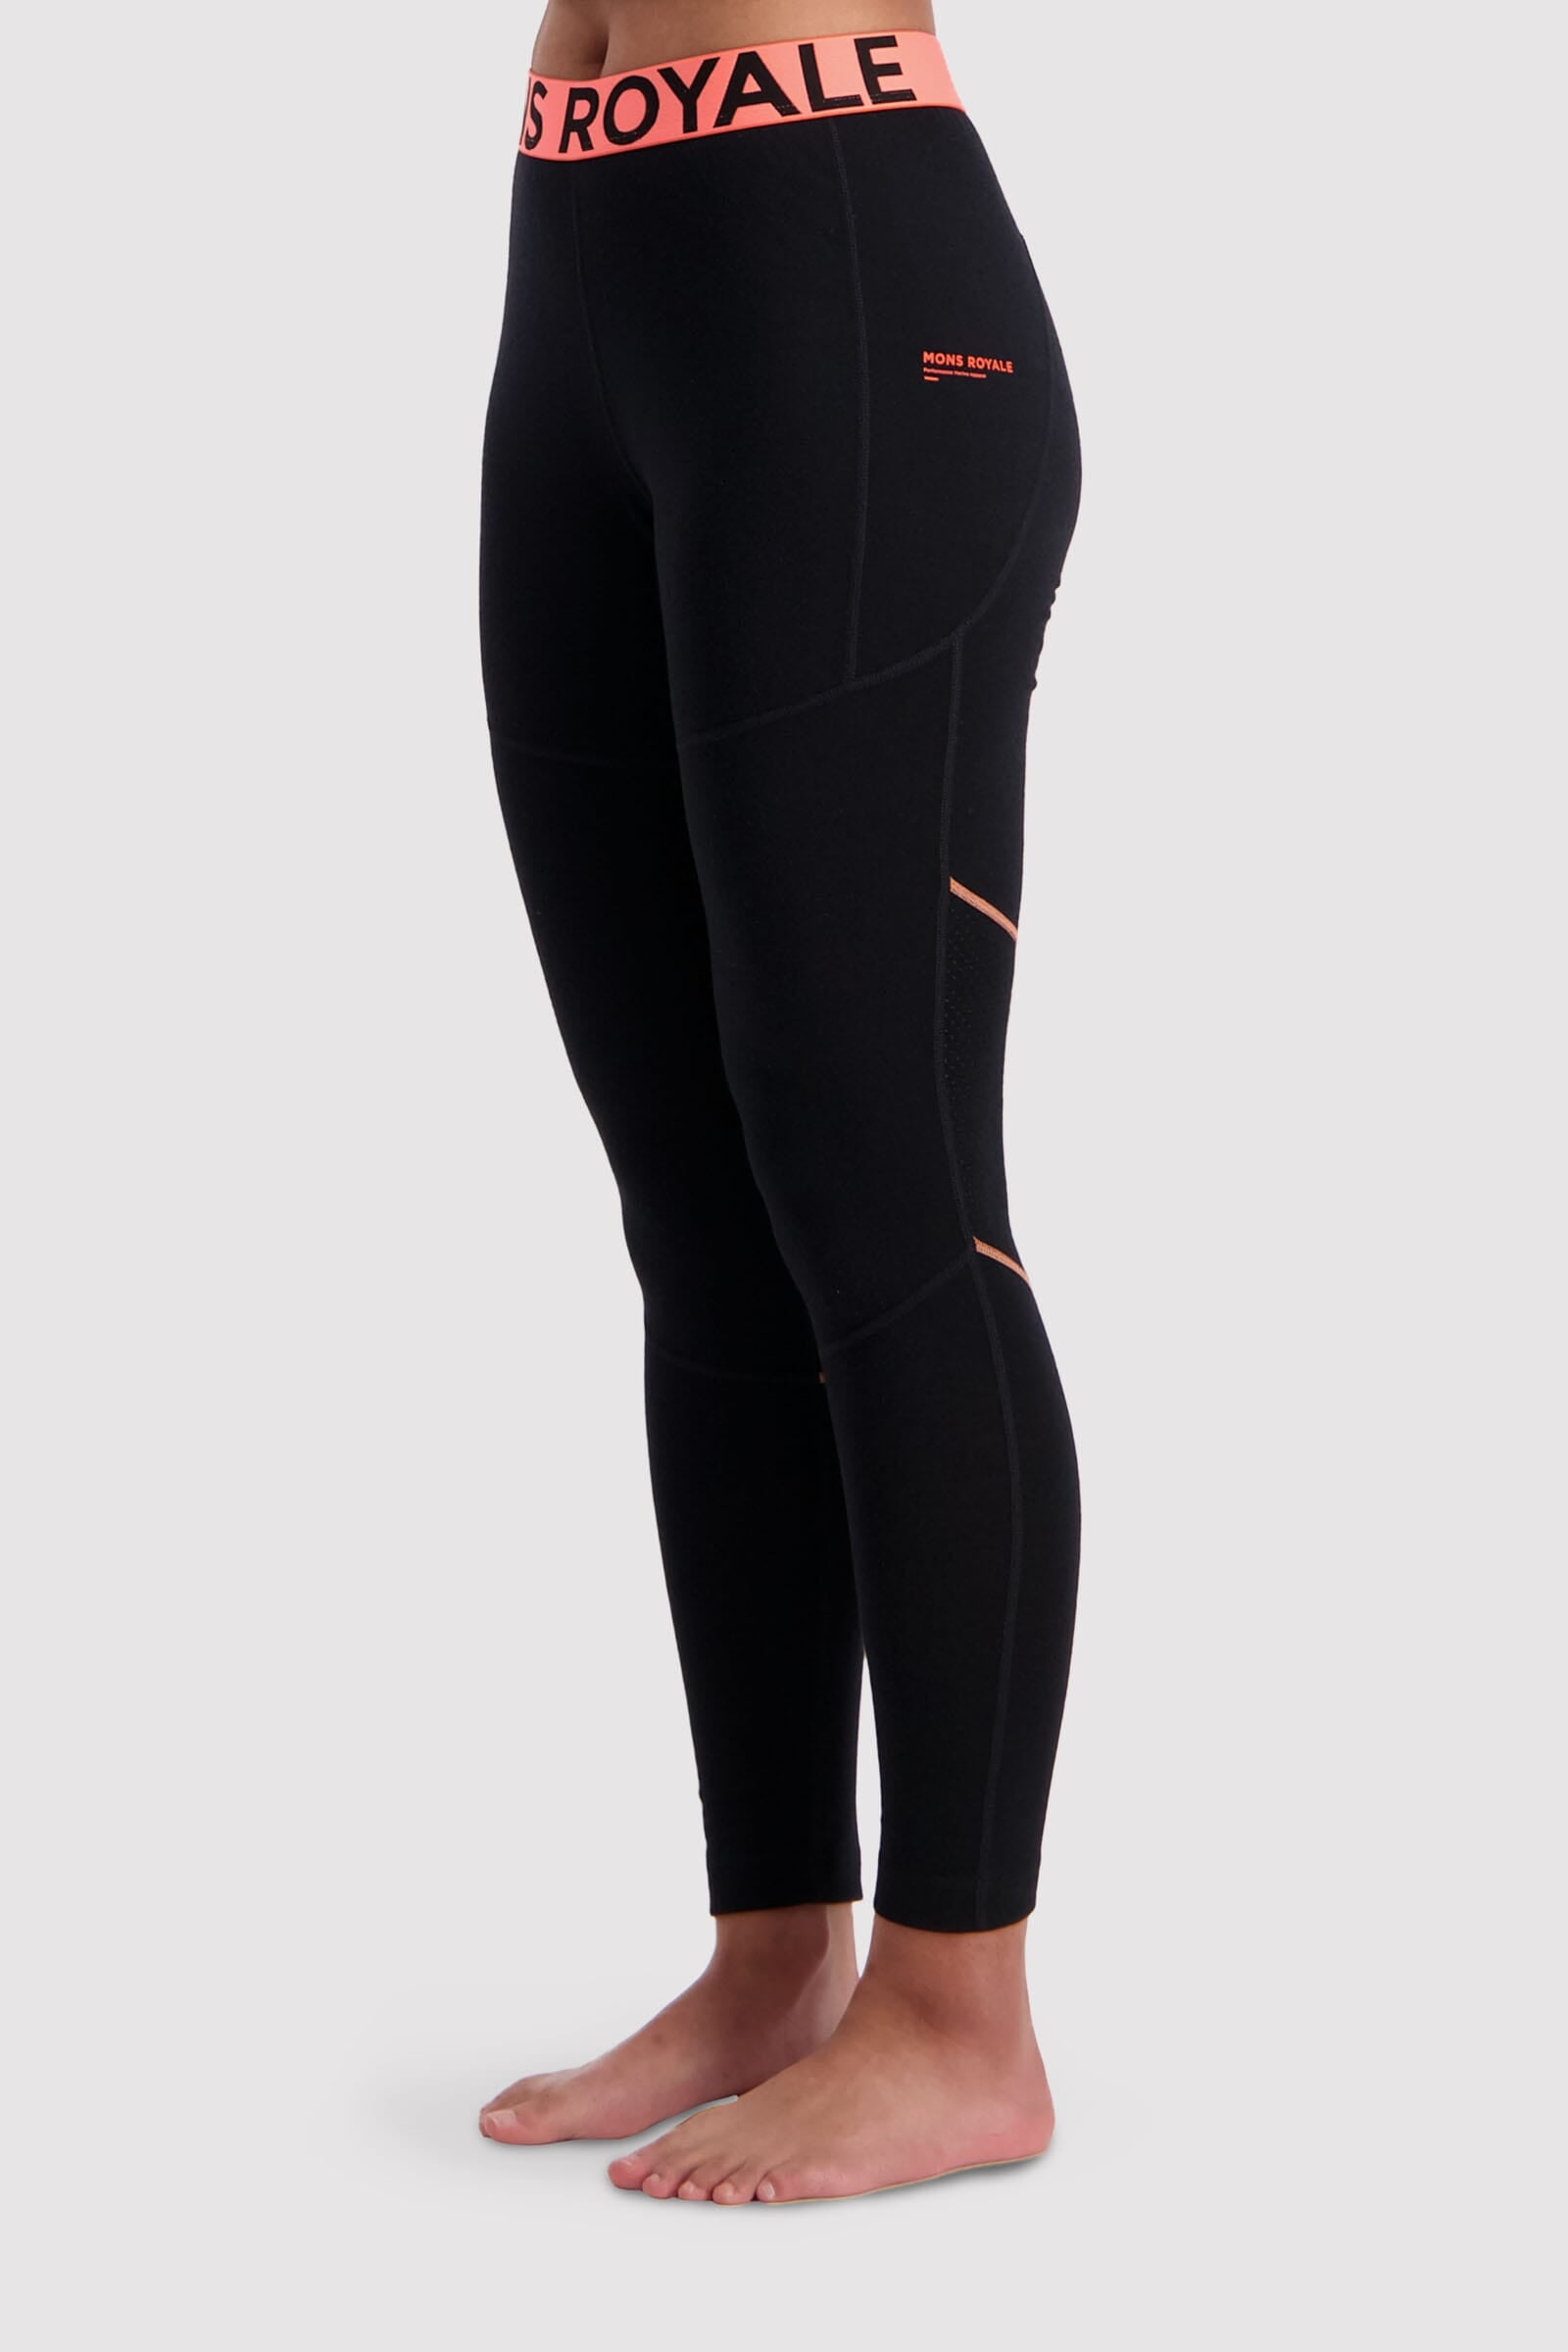 Olympus 3.0 Legging - Black